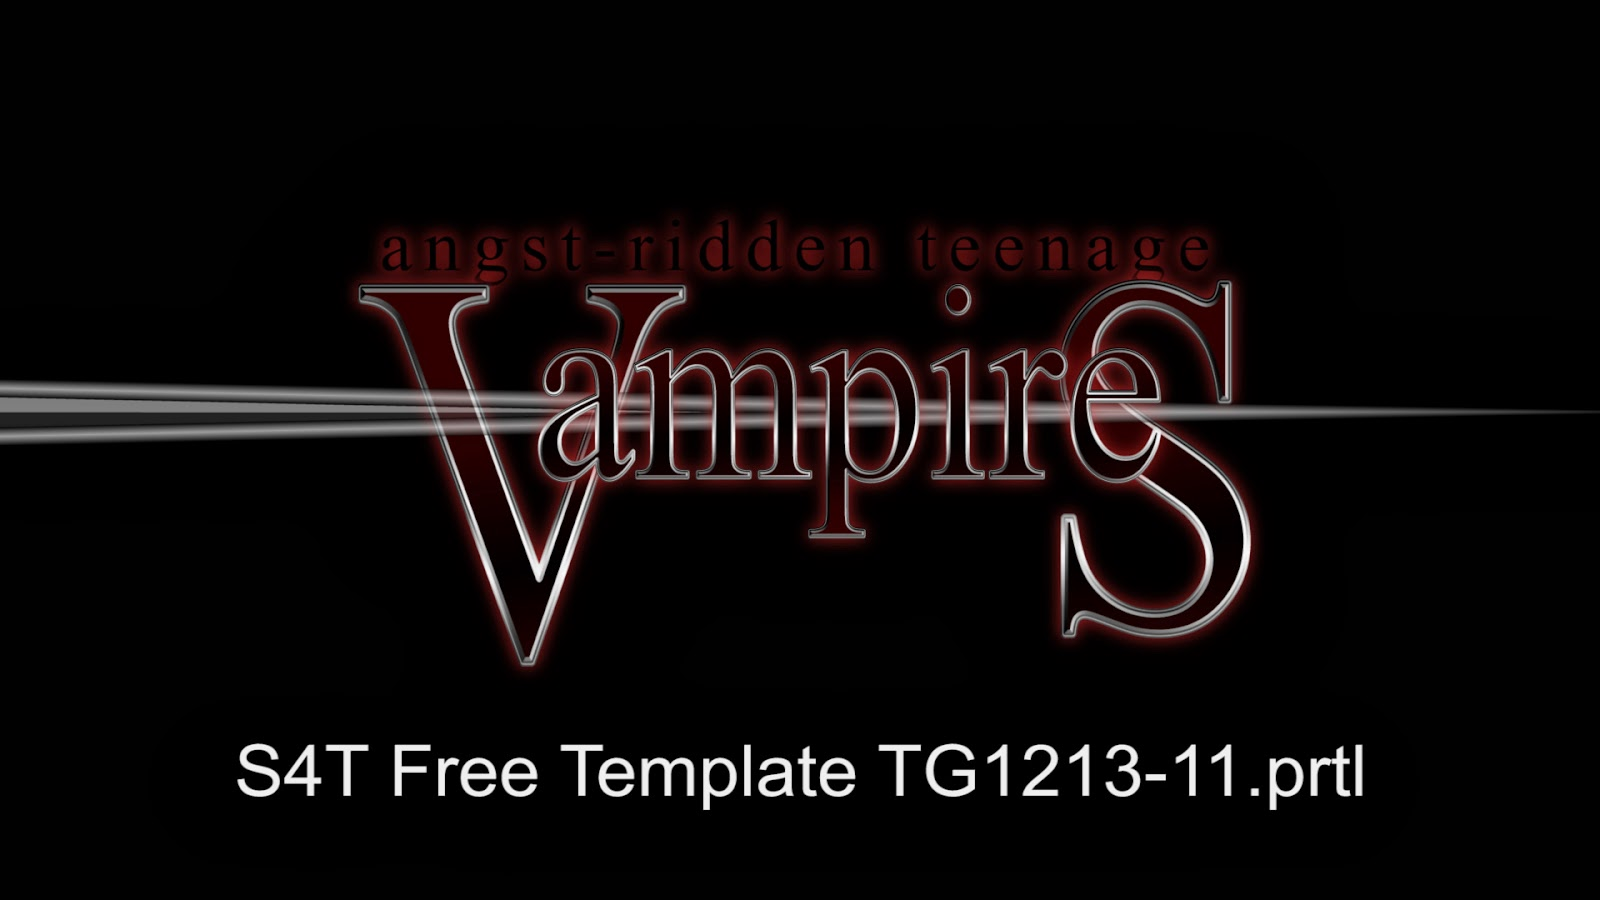 free premiere pro title templates - style4type free s4t premiere pro title template never